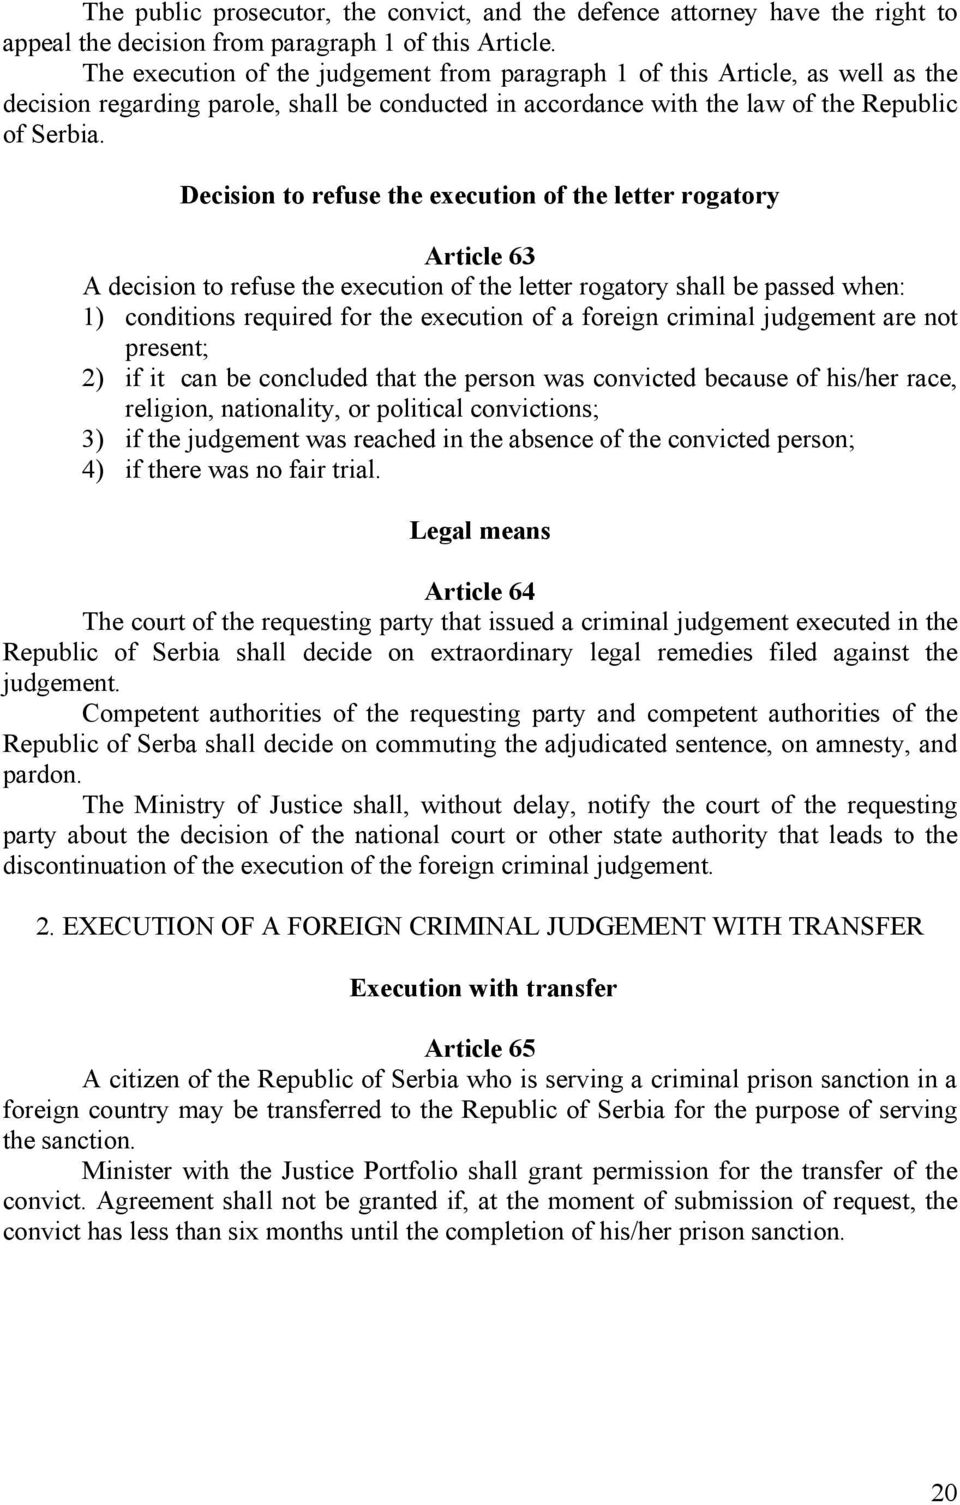 Decision to refuse the execution of the letter rogatory Article 63 A decision to refuse the execution of the letter rogatory shall be passed when: 1) conditions required for the execution of a